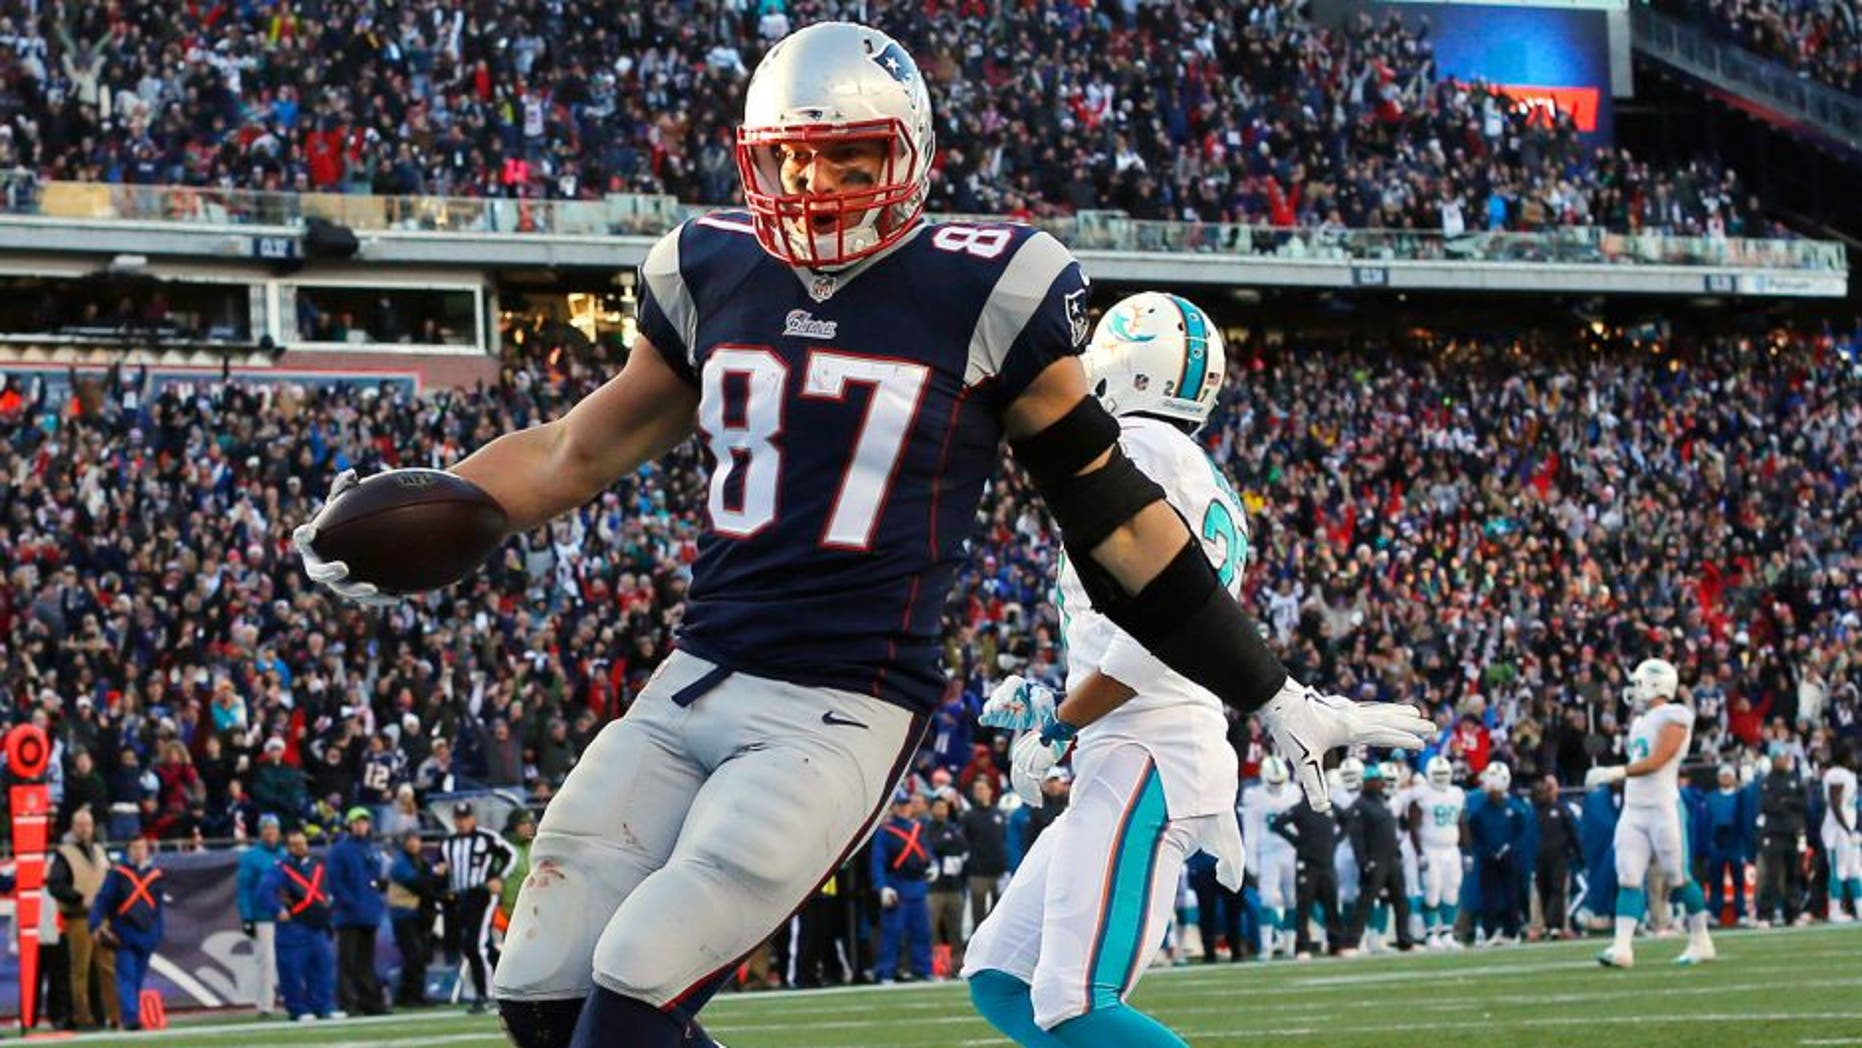 Dec 14, 2014; Foxborough, MA, USA; New England Patriots tight end Rob Gronkowski (87) scores a touchdown during the second half against the Miami Dolphins at Gillette Stadium. The Patriots won 41-13. Mandatory Credit: Winslow Townson-USA TODAY Sports